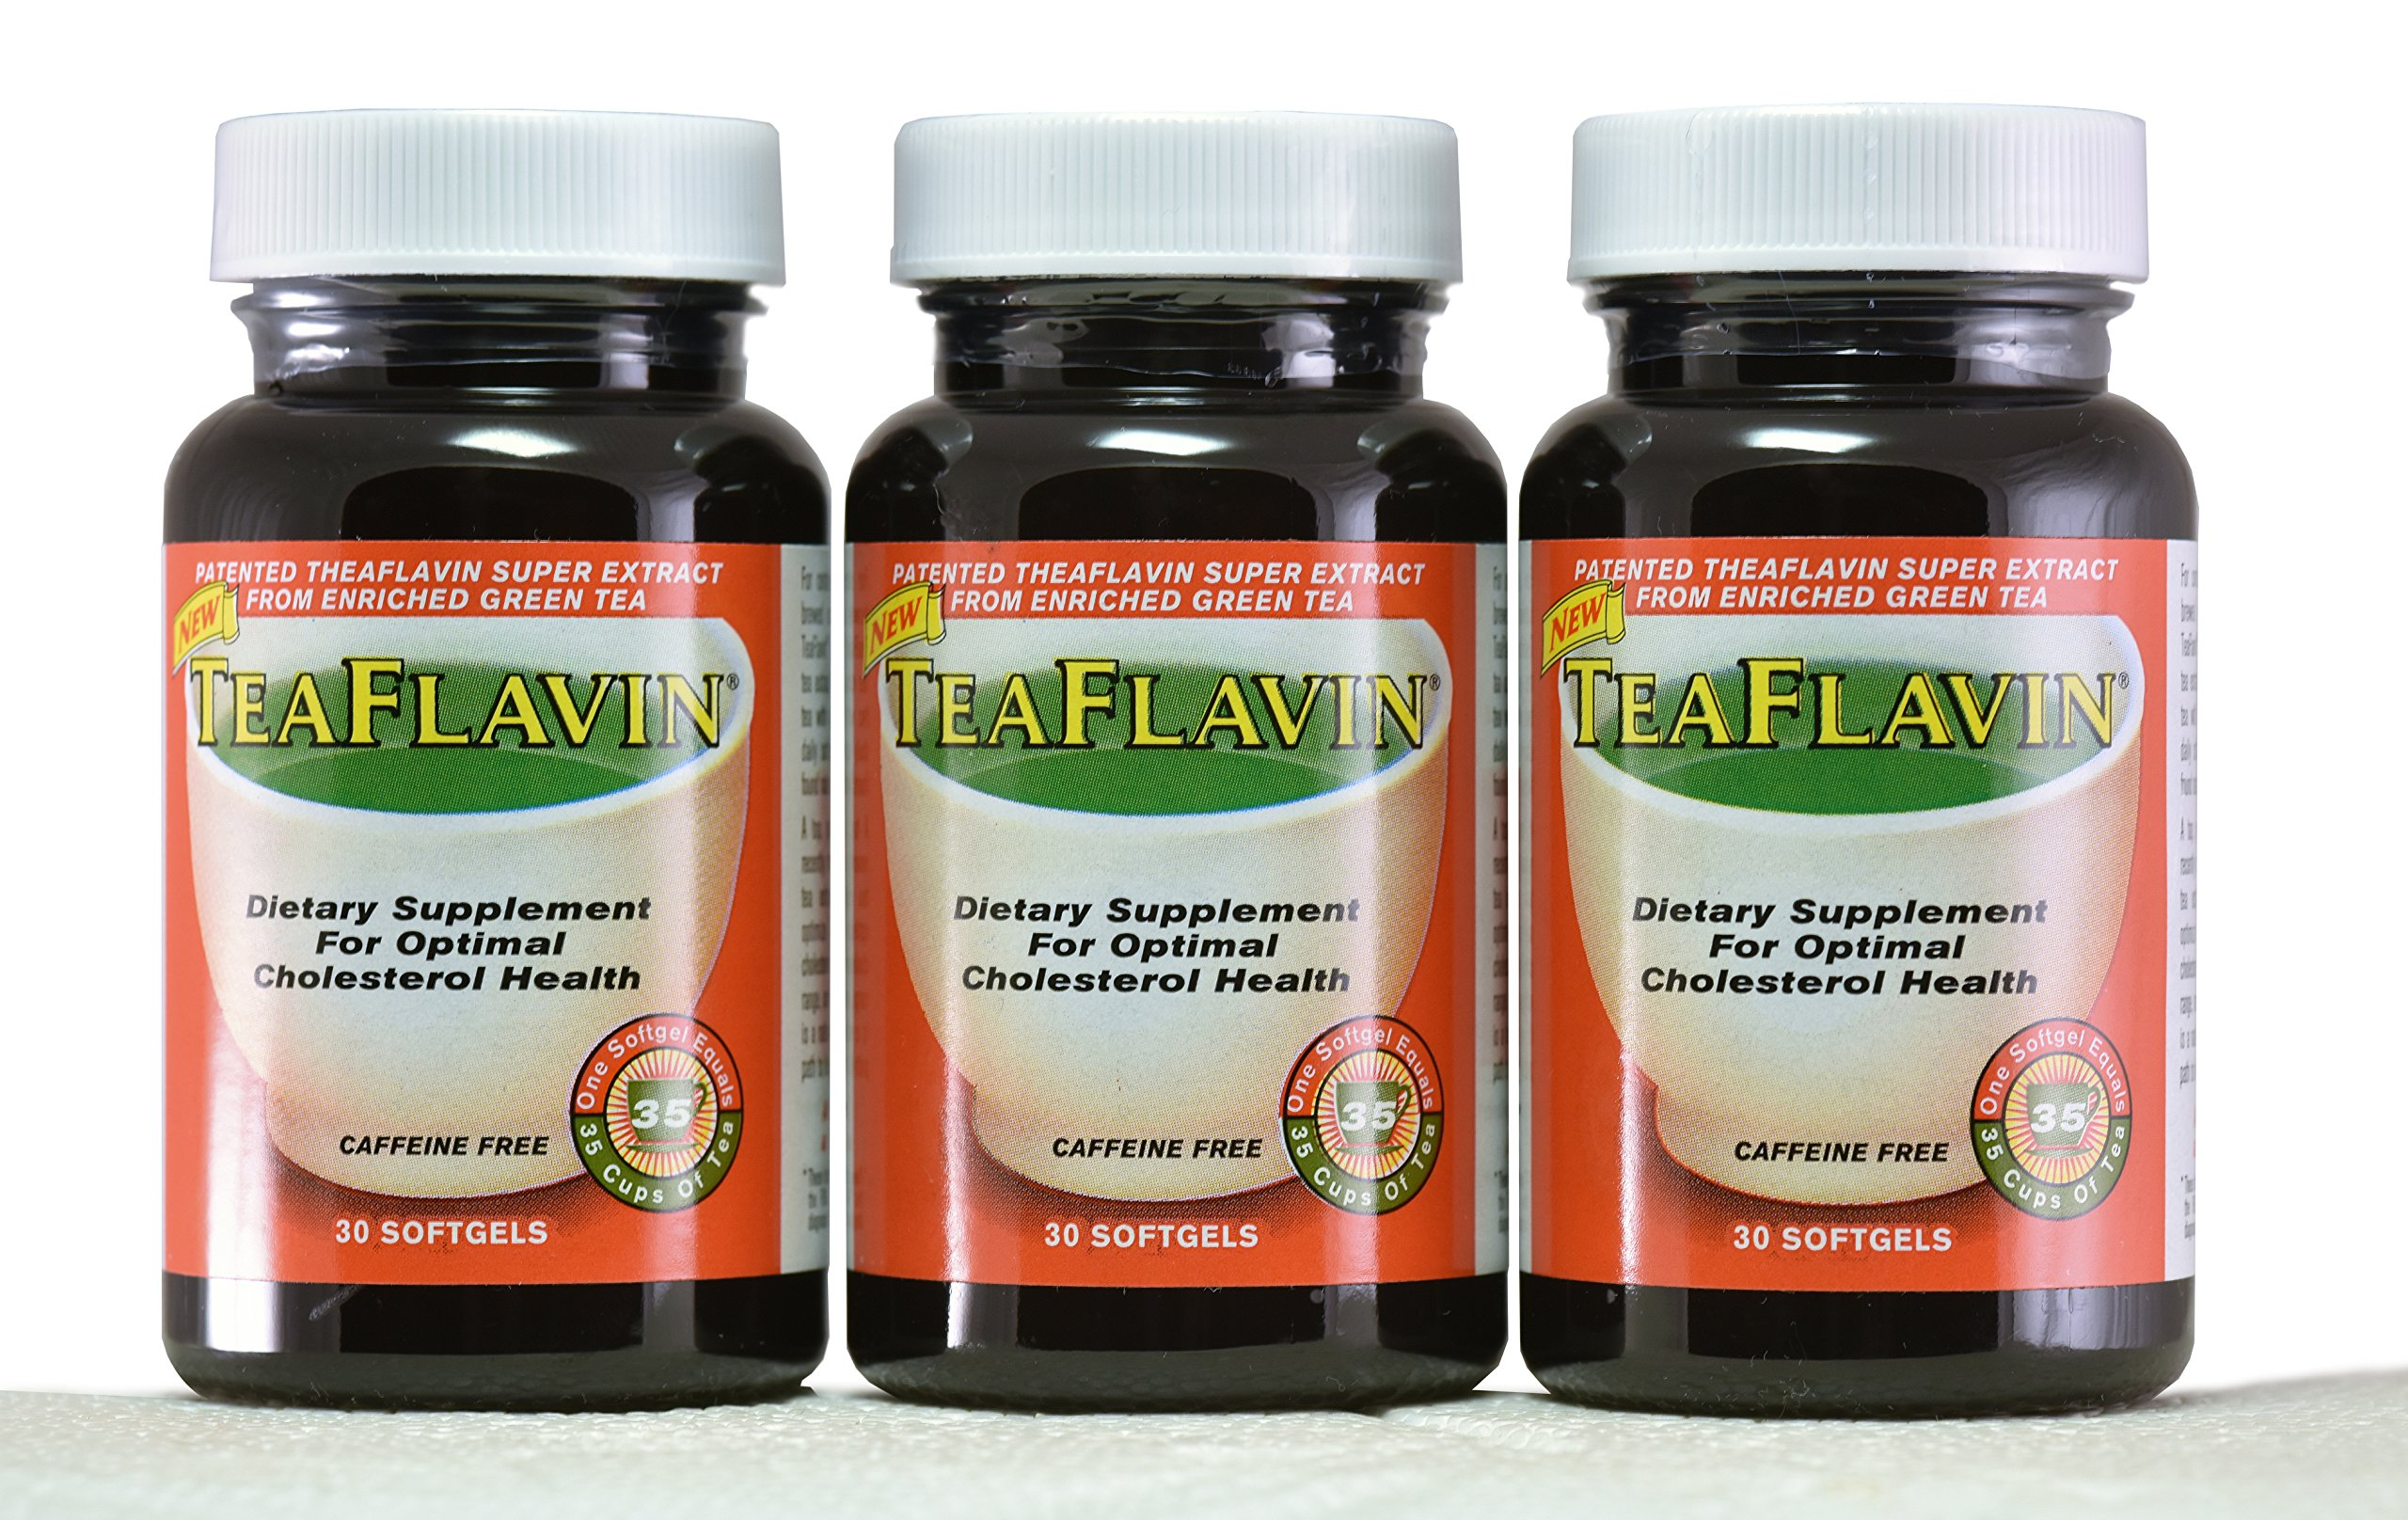 Green Tea Extract immune system support supplements, weight loss, Reduces Cholesterol, Natural Energy & Caffeine Free with Theaflavins - 1 Capsule = 35 Cups of Green Tea (90 Capsules/3 months supply)